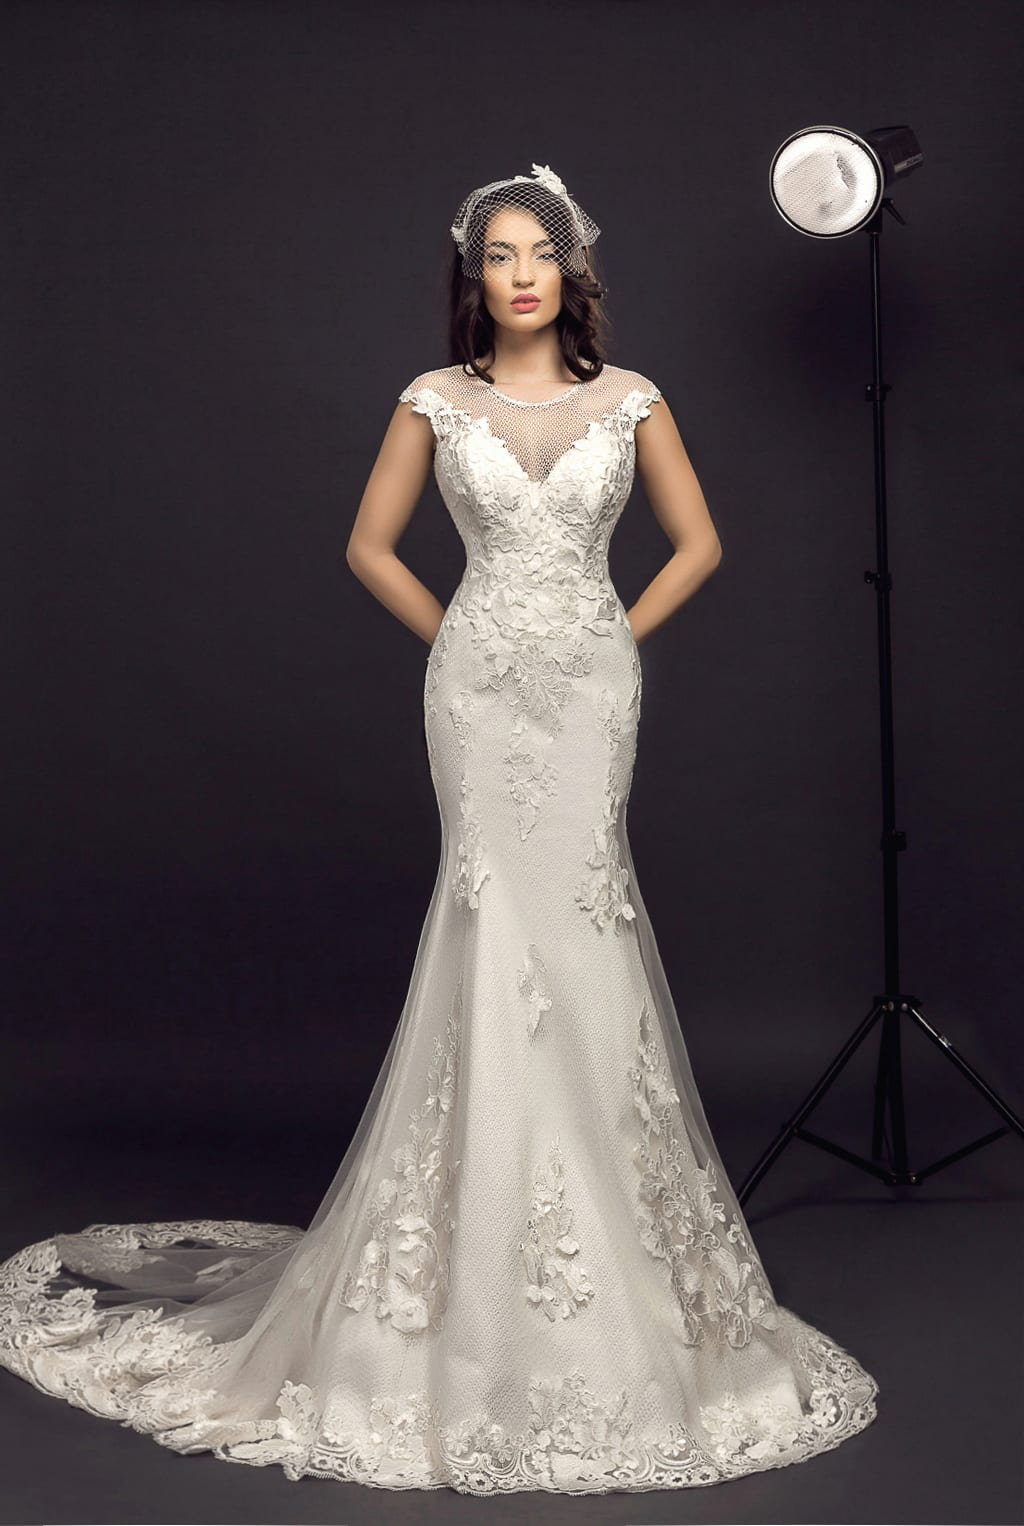 Palmira Model - Colectia Dreams - Adora Sposa (3)